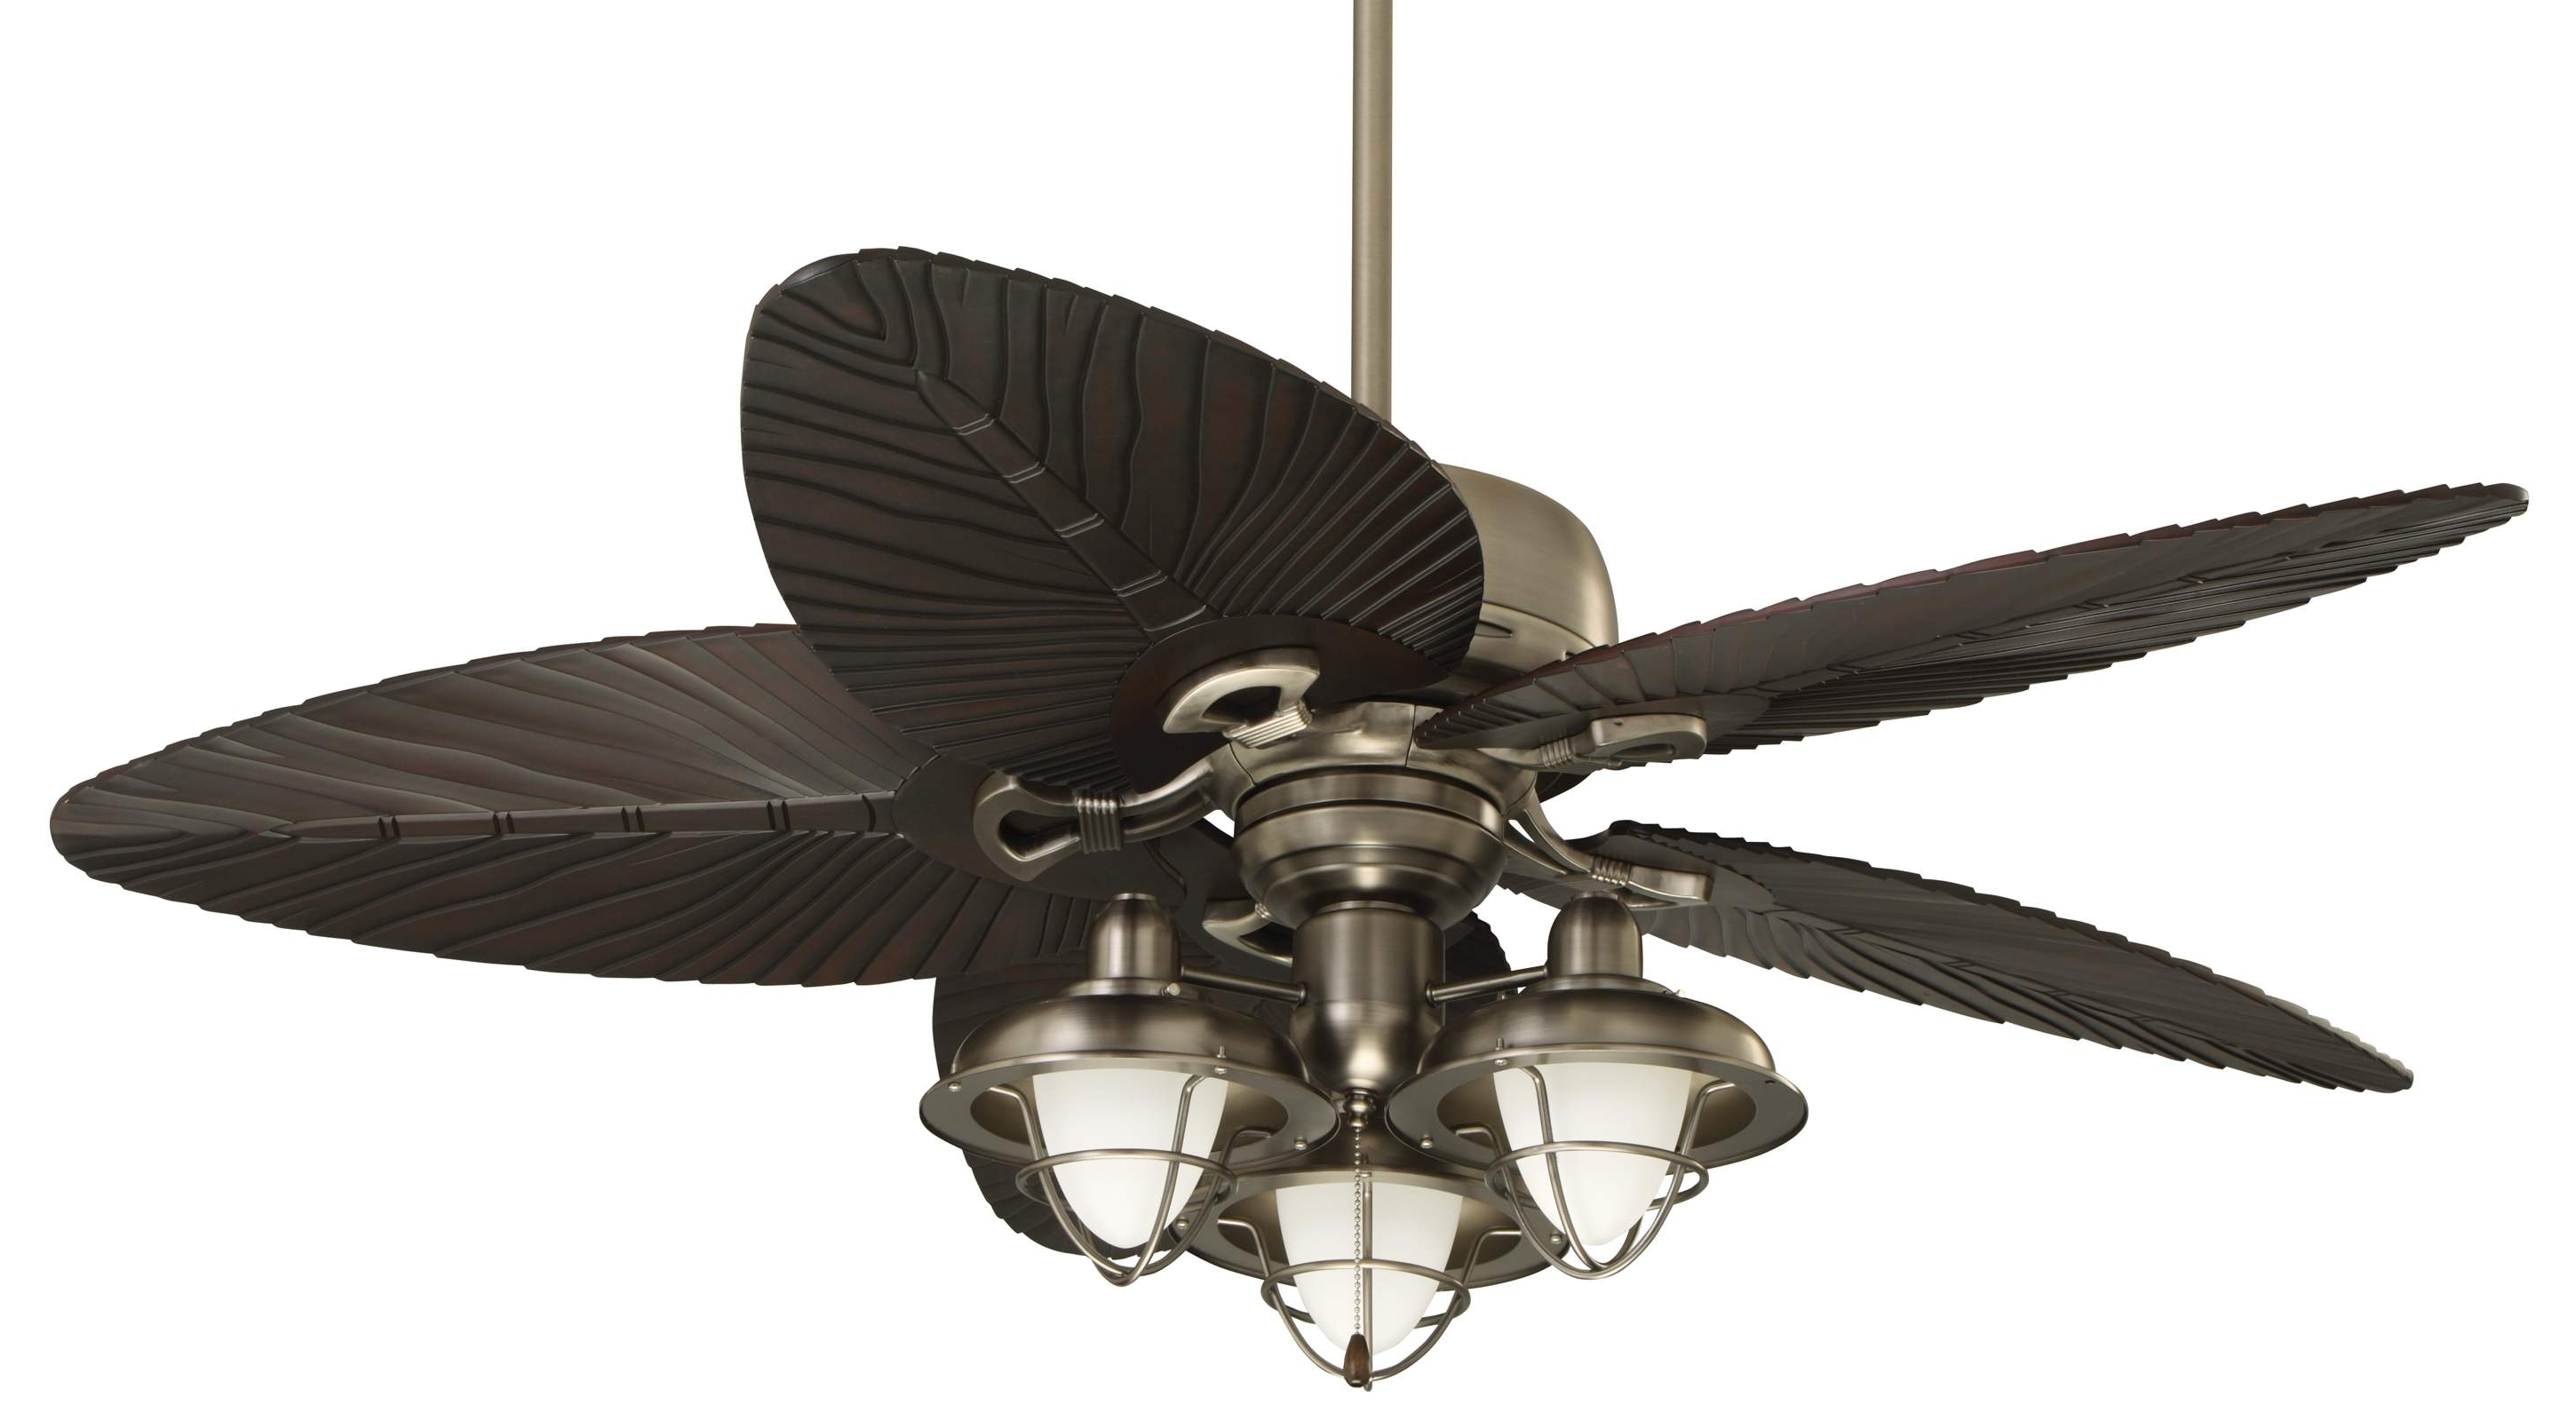 Decor: Bring An Island Look Into Your Home With Cool Ceiling Fan With Newest Leaf Blades Outdoor Ceiling Fans (View 14 of 20)